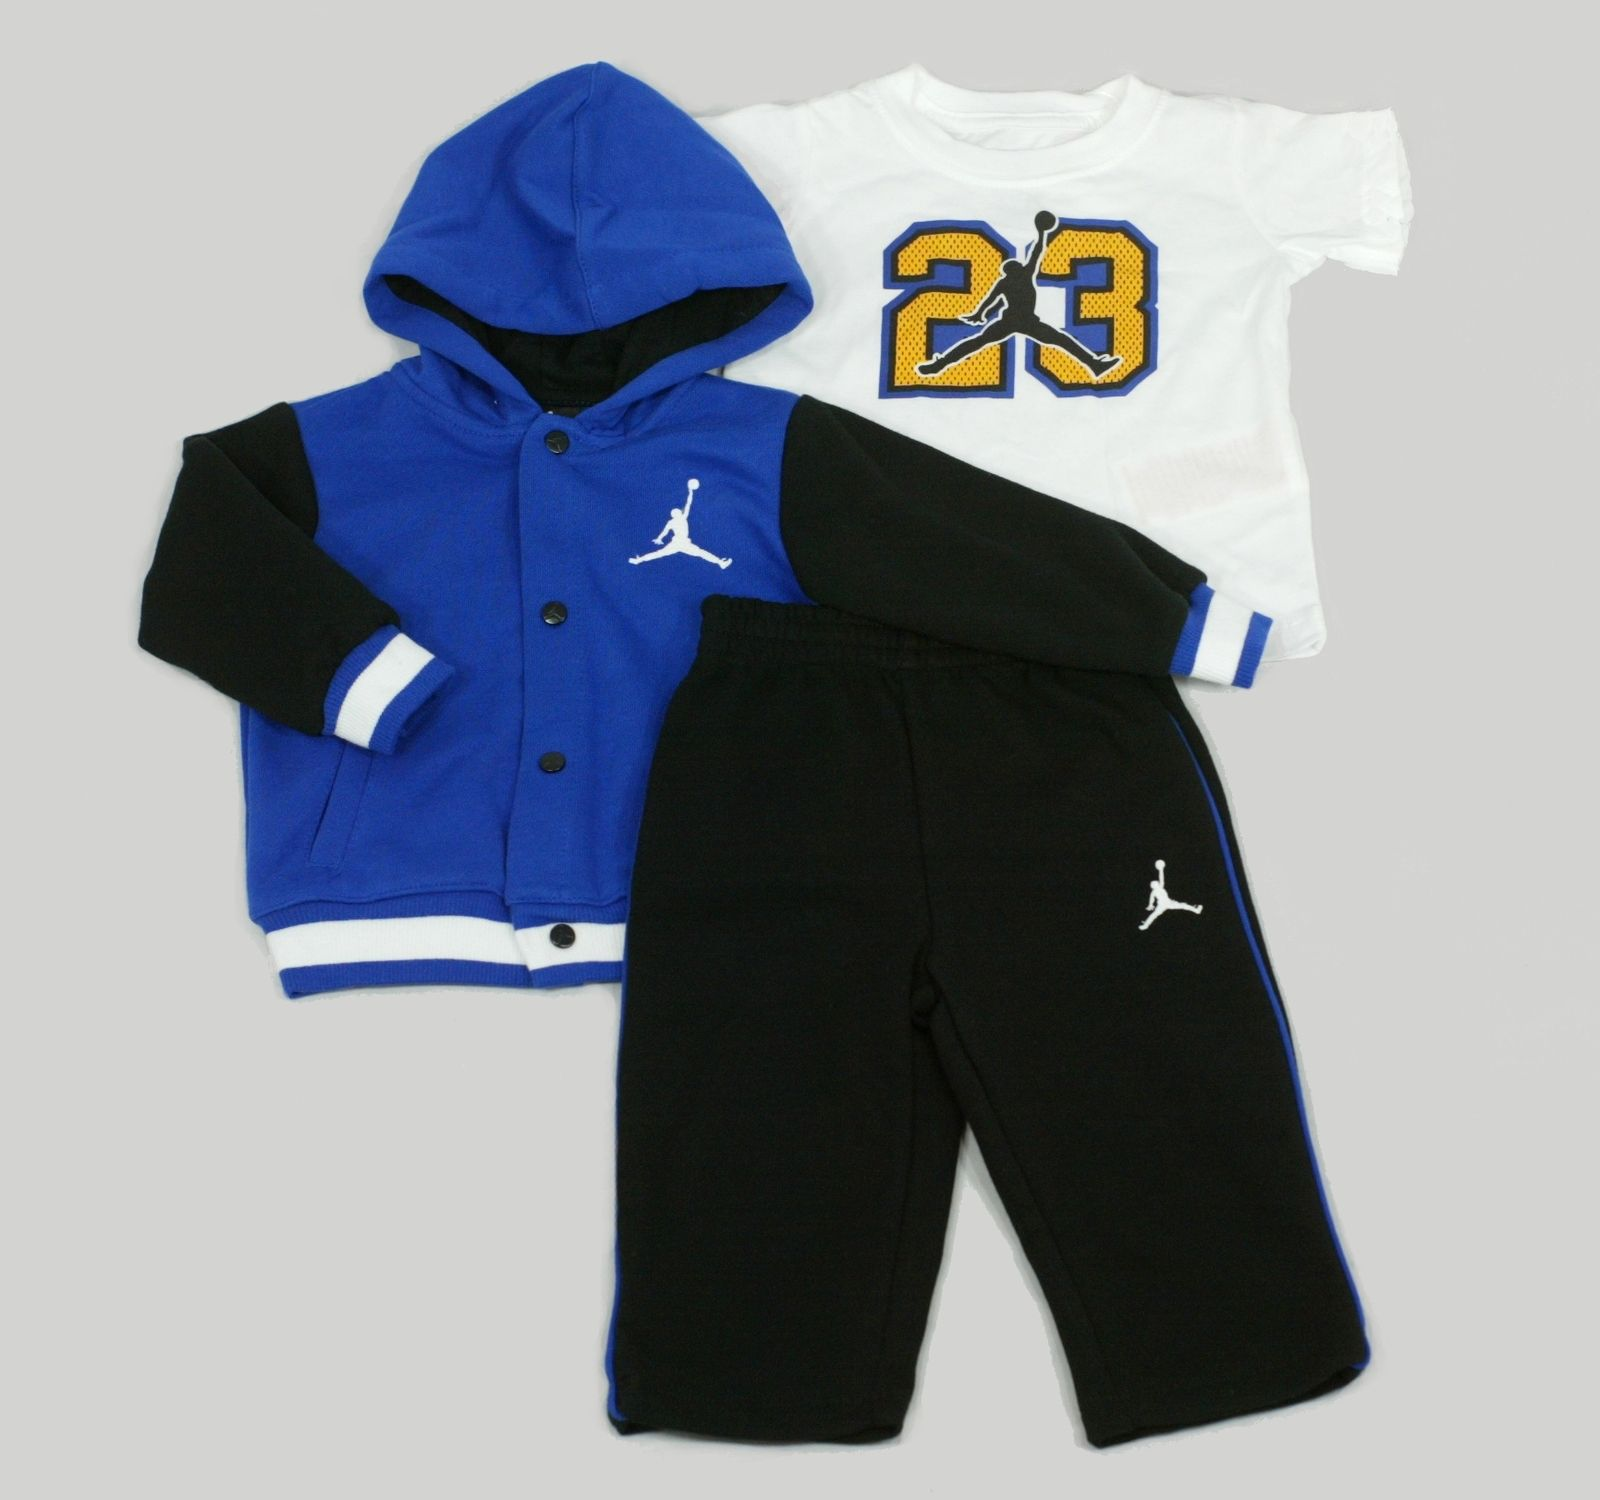 Baby u0026 Toddler Boys Nike Air Jordan 23 Varsity Hoodie T-Shirt Pants Outfit Set In Blue | Kid ...